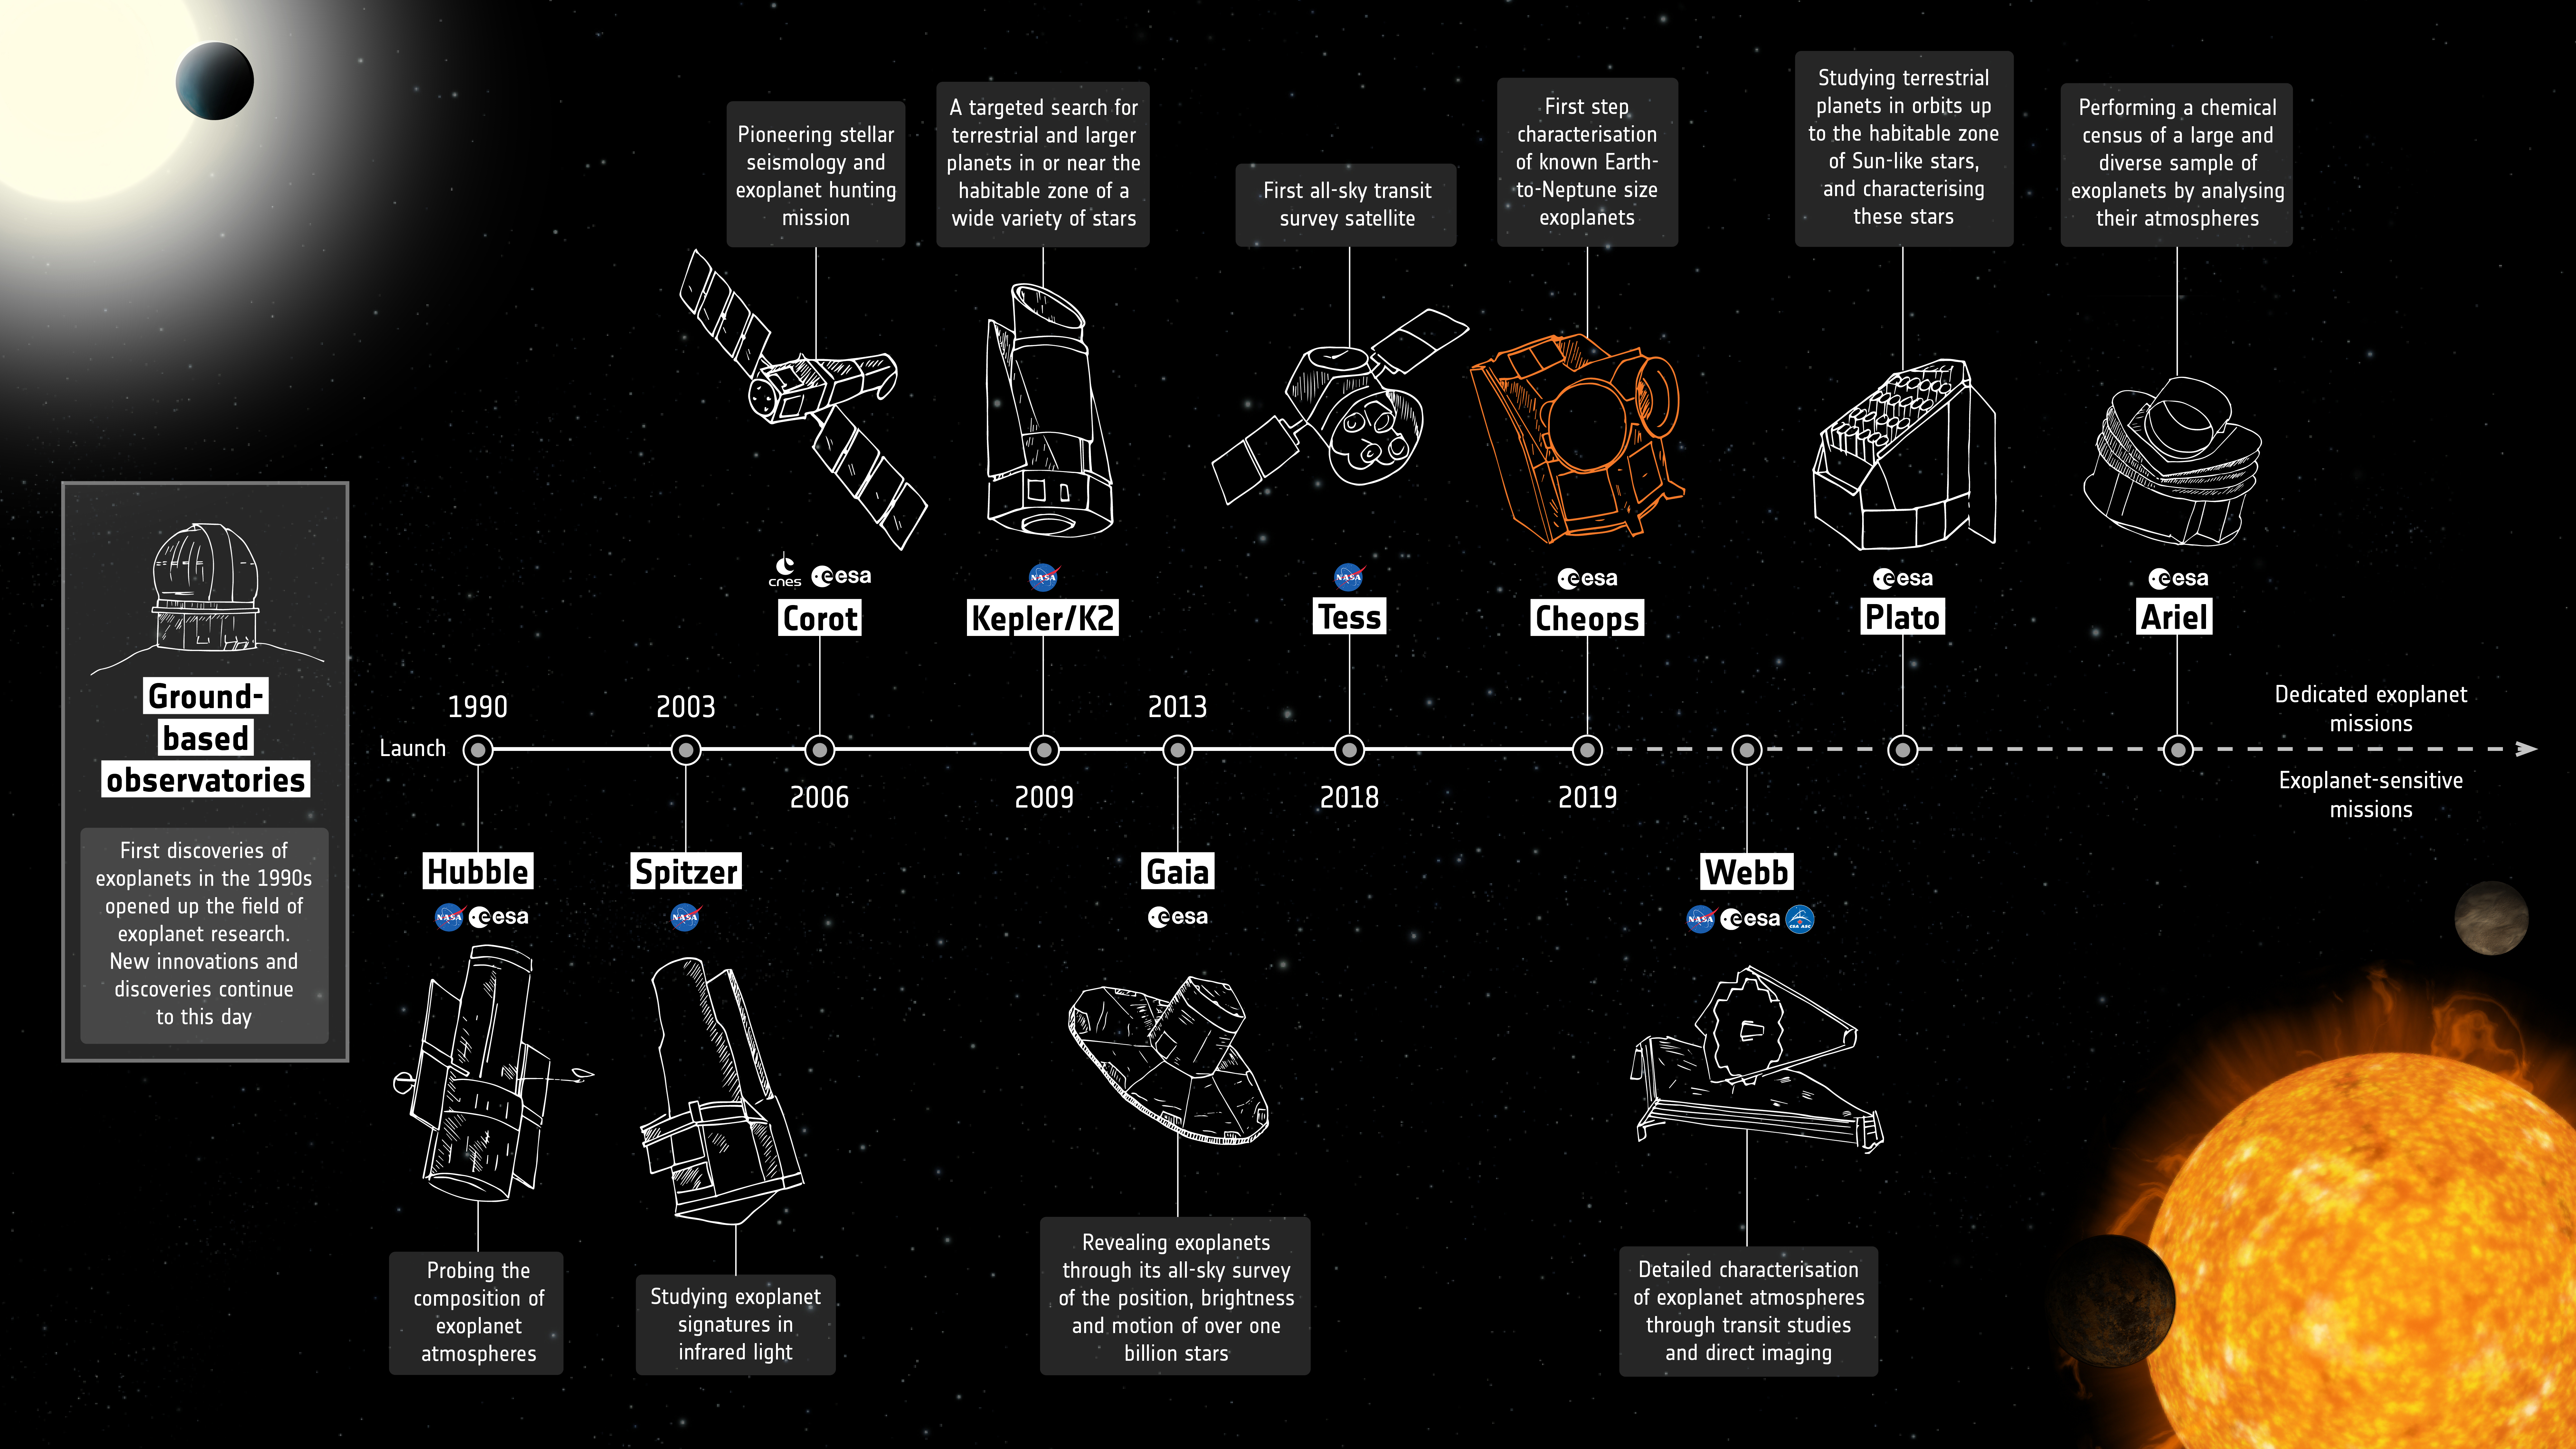 Exoplanets_missions_20201127_cheops.jpg